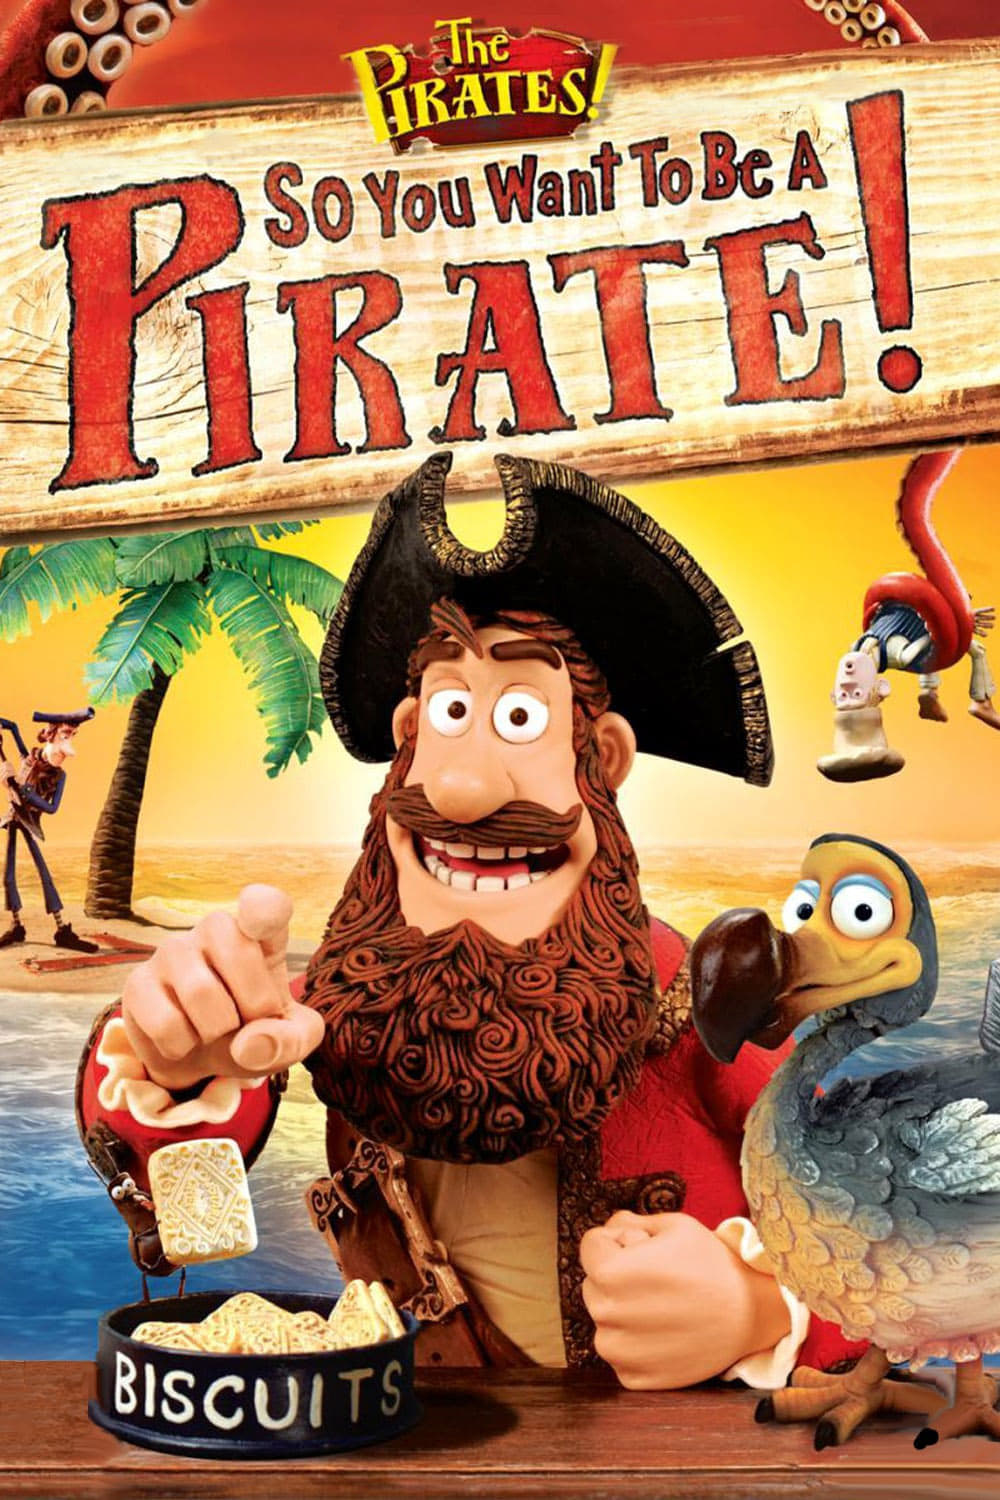 So You Want to Be a Pirate!